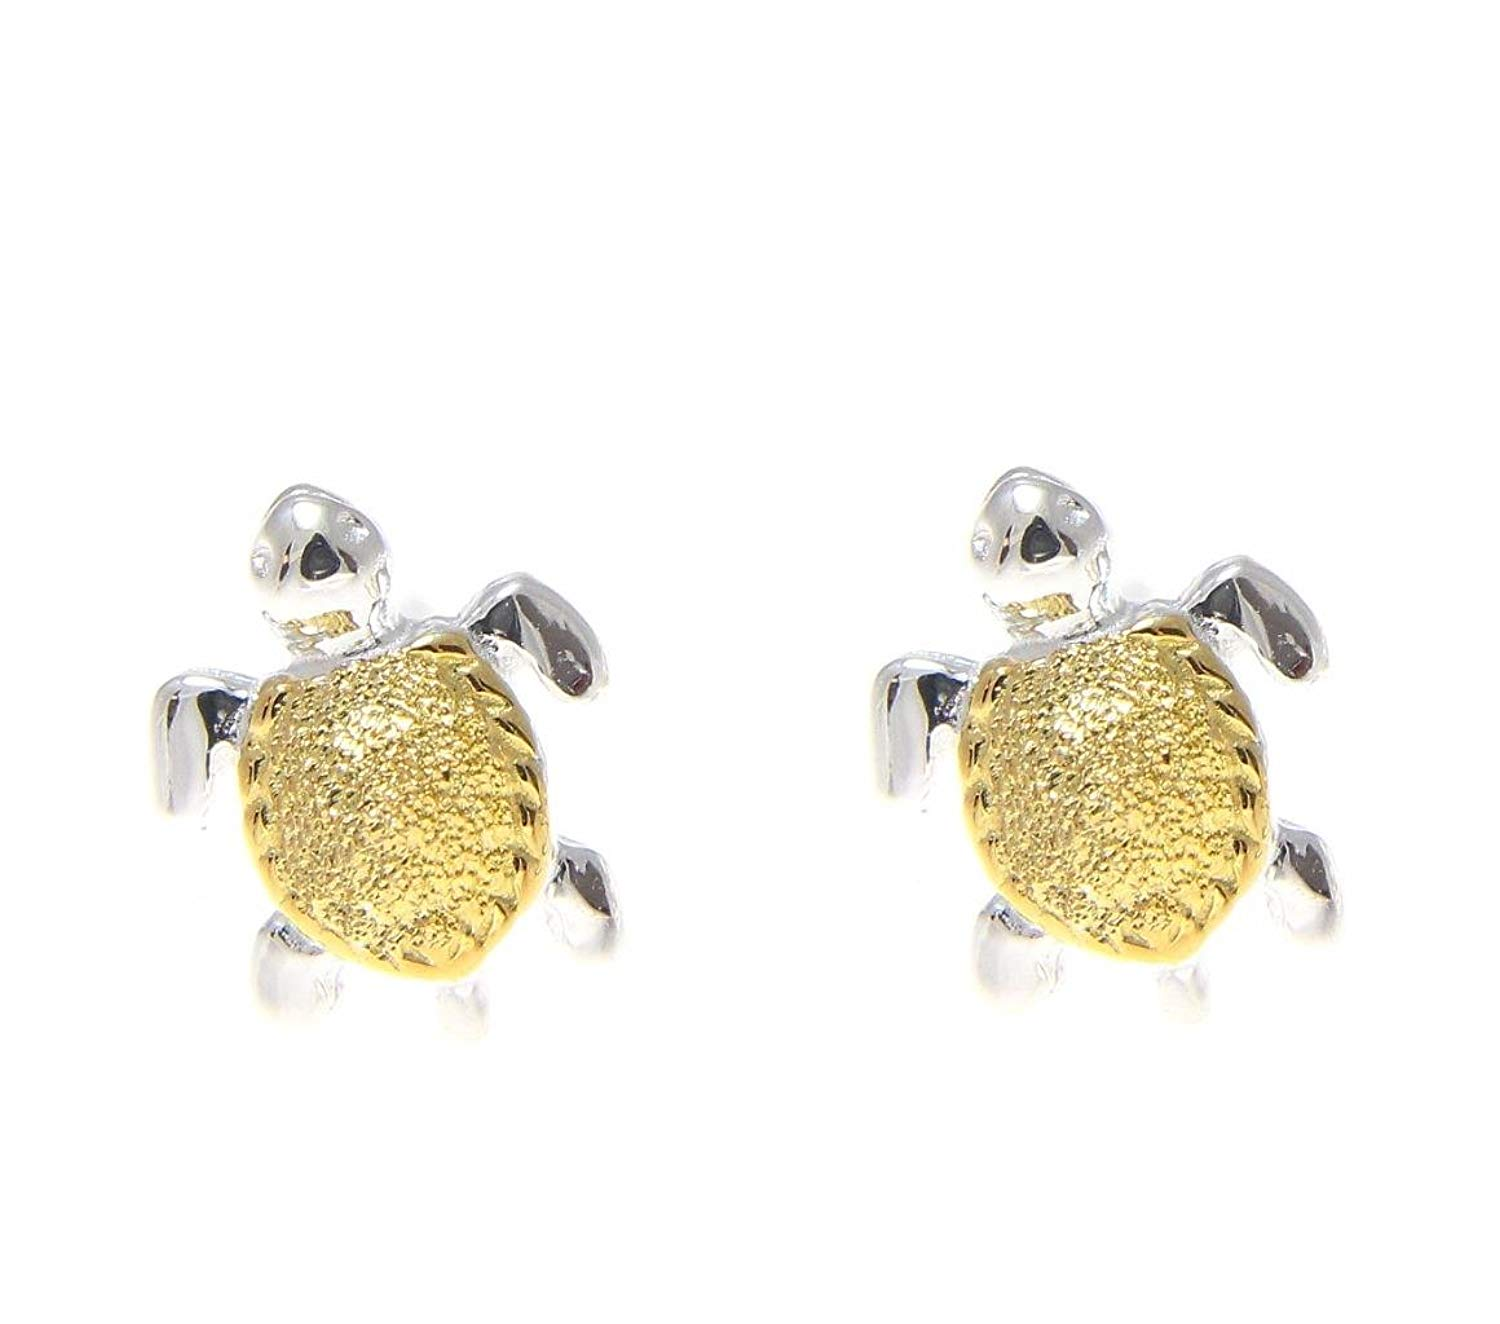 bc63fb2e7 Get Quotations · 925 sterling silver 2 tone yellow gold plated Hawaiian sea turtle  stud earrings extra small 7mm